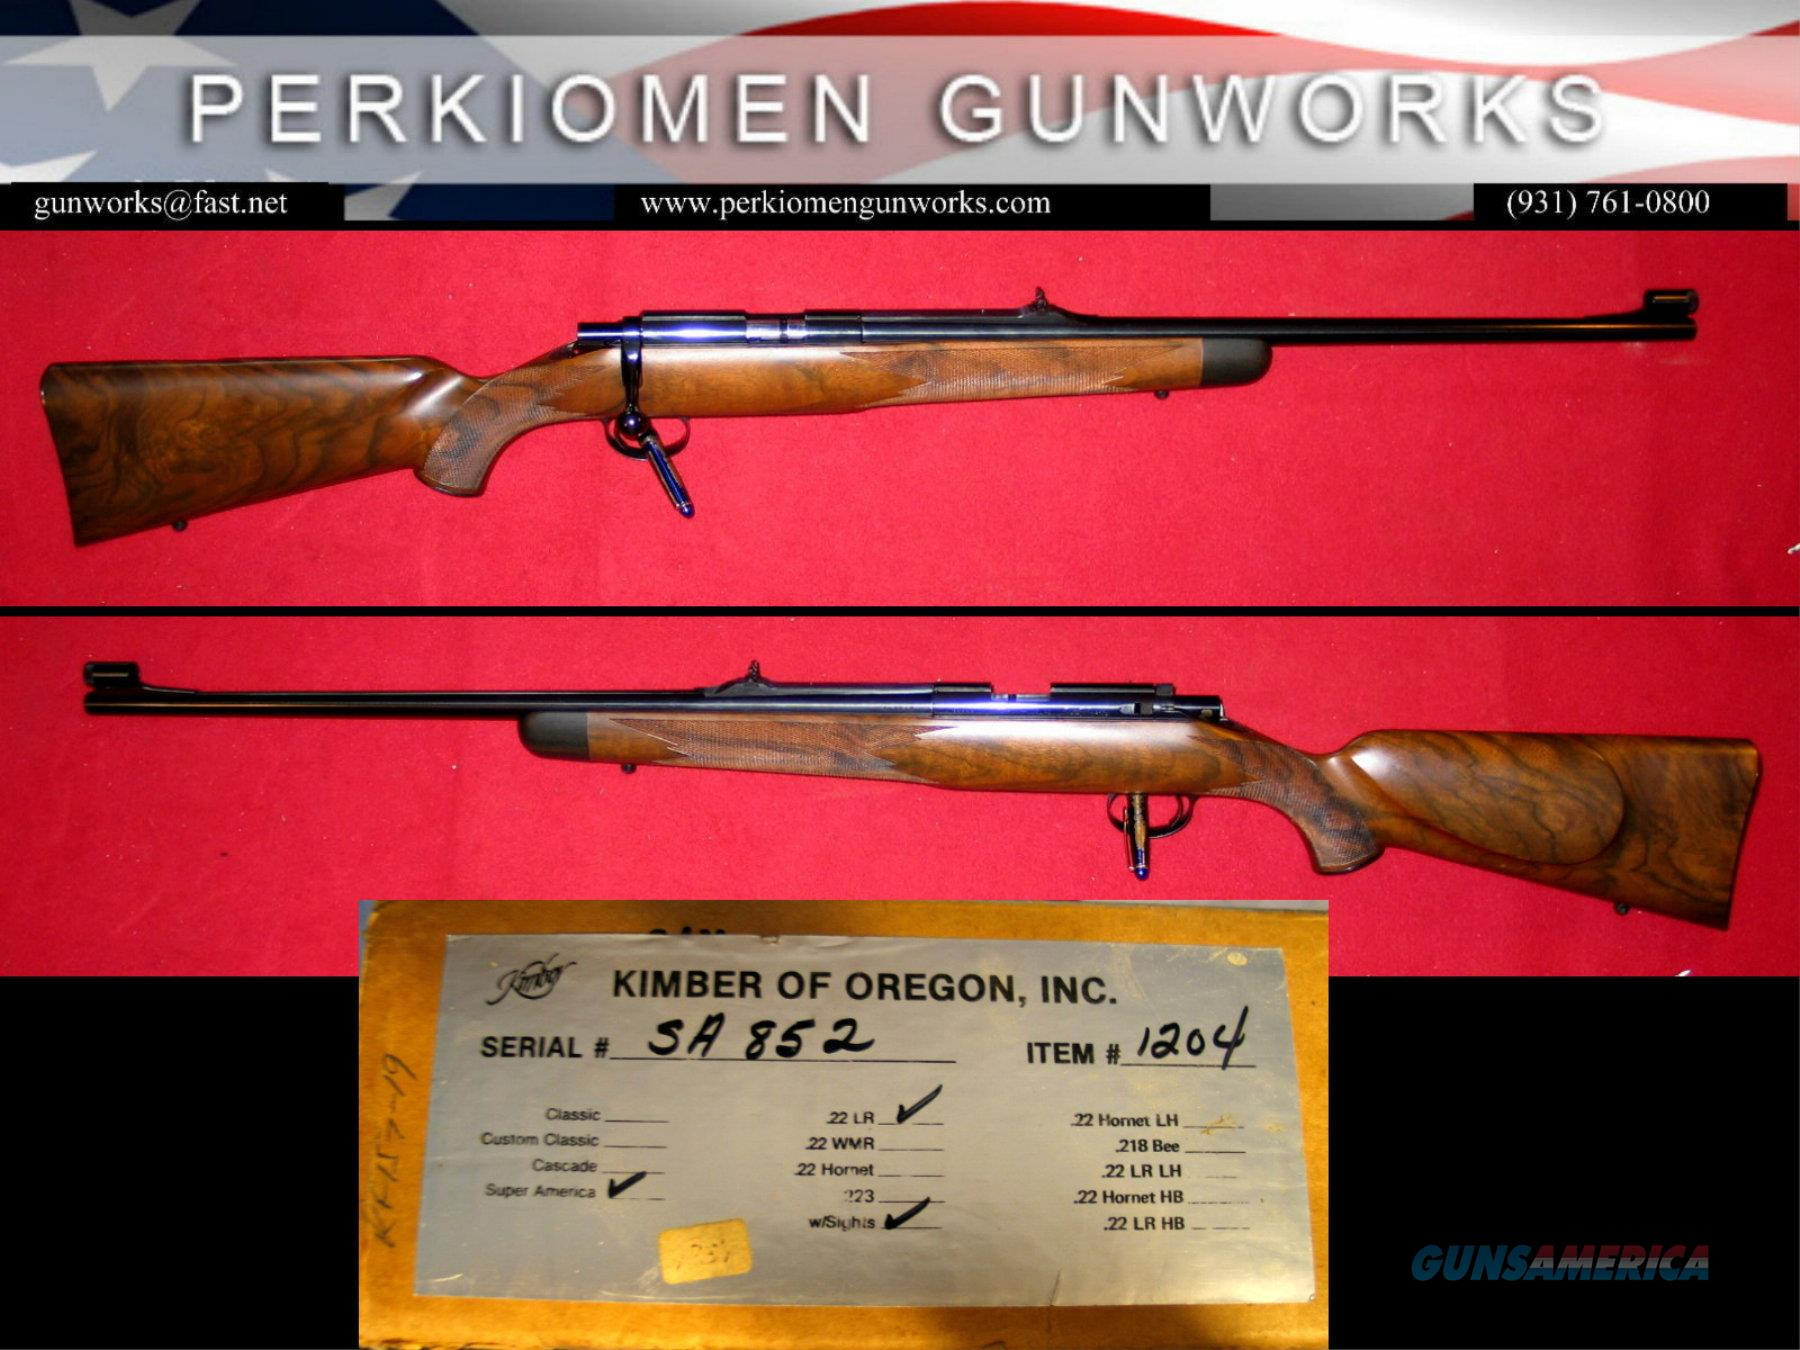 M-82 Super America .22LR – AS NEW IN BOX  Guns > Rifles > Kimber of Oregon Rifles